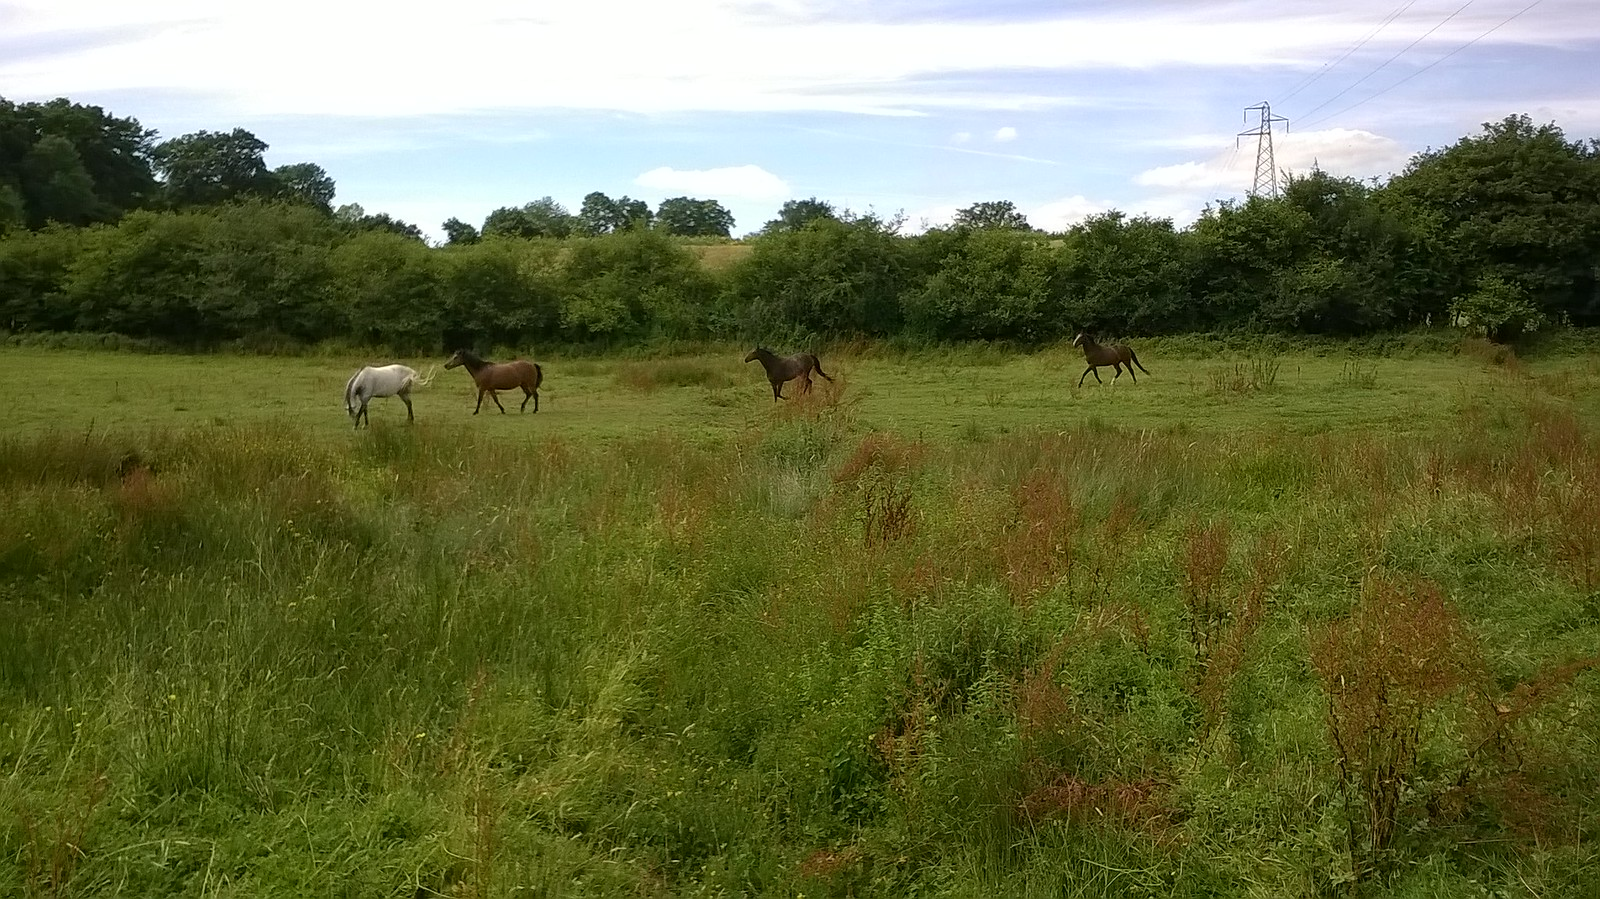 Horses near Giffords Wood West Sussex